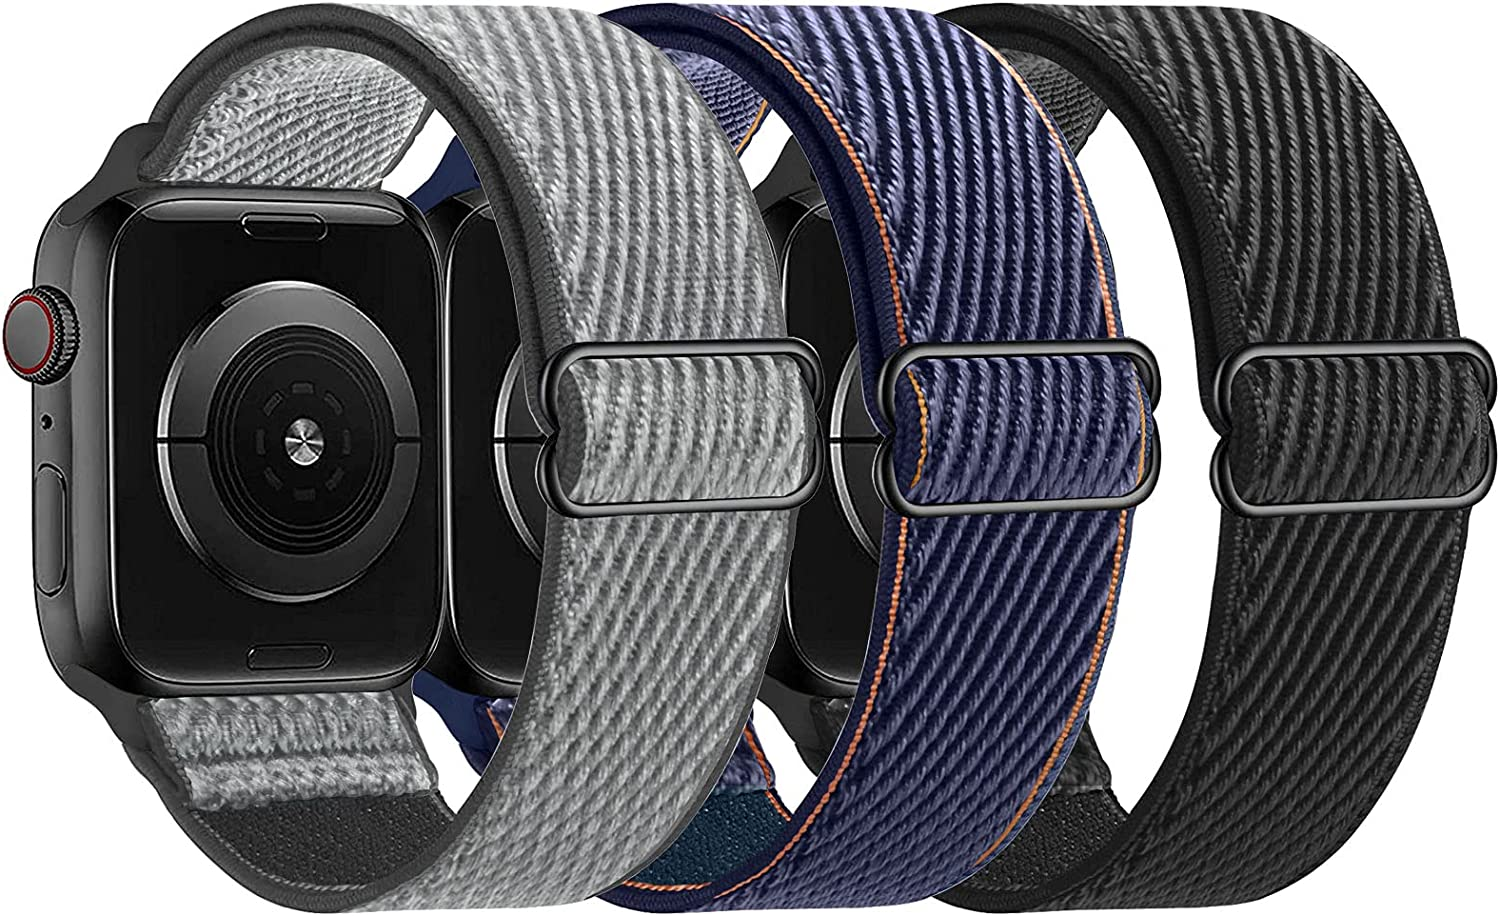 LANGXIAN 3 Pack Nylon Elastic Strap Compatible with Apple Watch Bands, Solo Loop Adjustable Stretch Braided Wristband for iWatch Series 6/5/4/3/2/1/SE, 42mm 44mm (Storm-Gray/Deep Navy/Black)